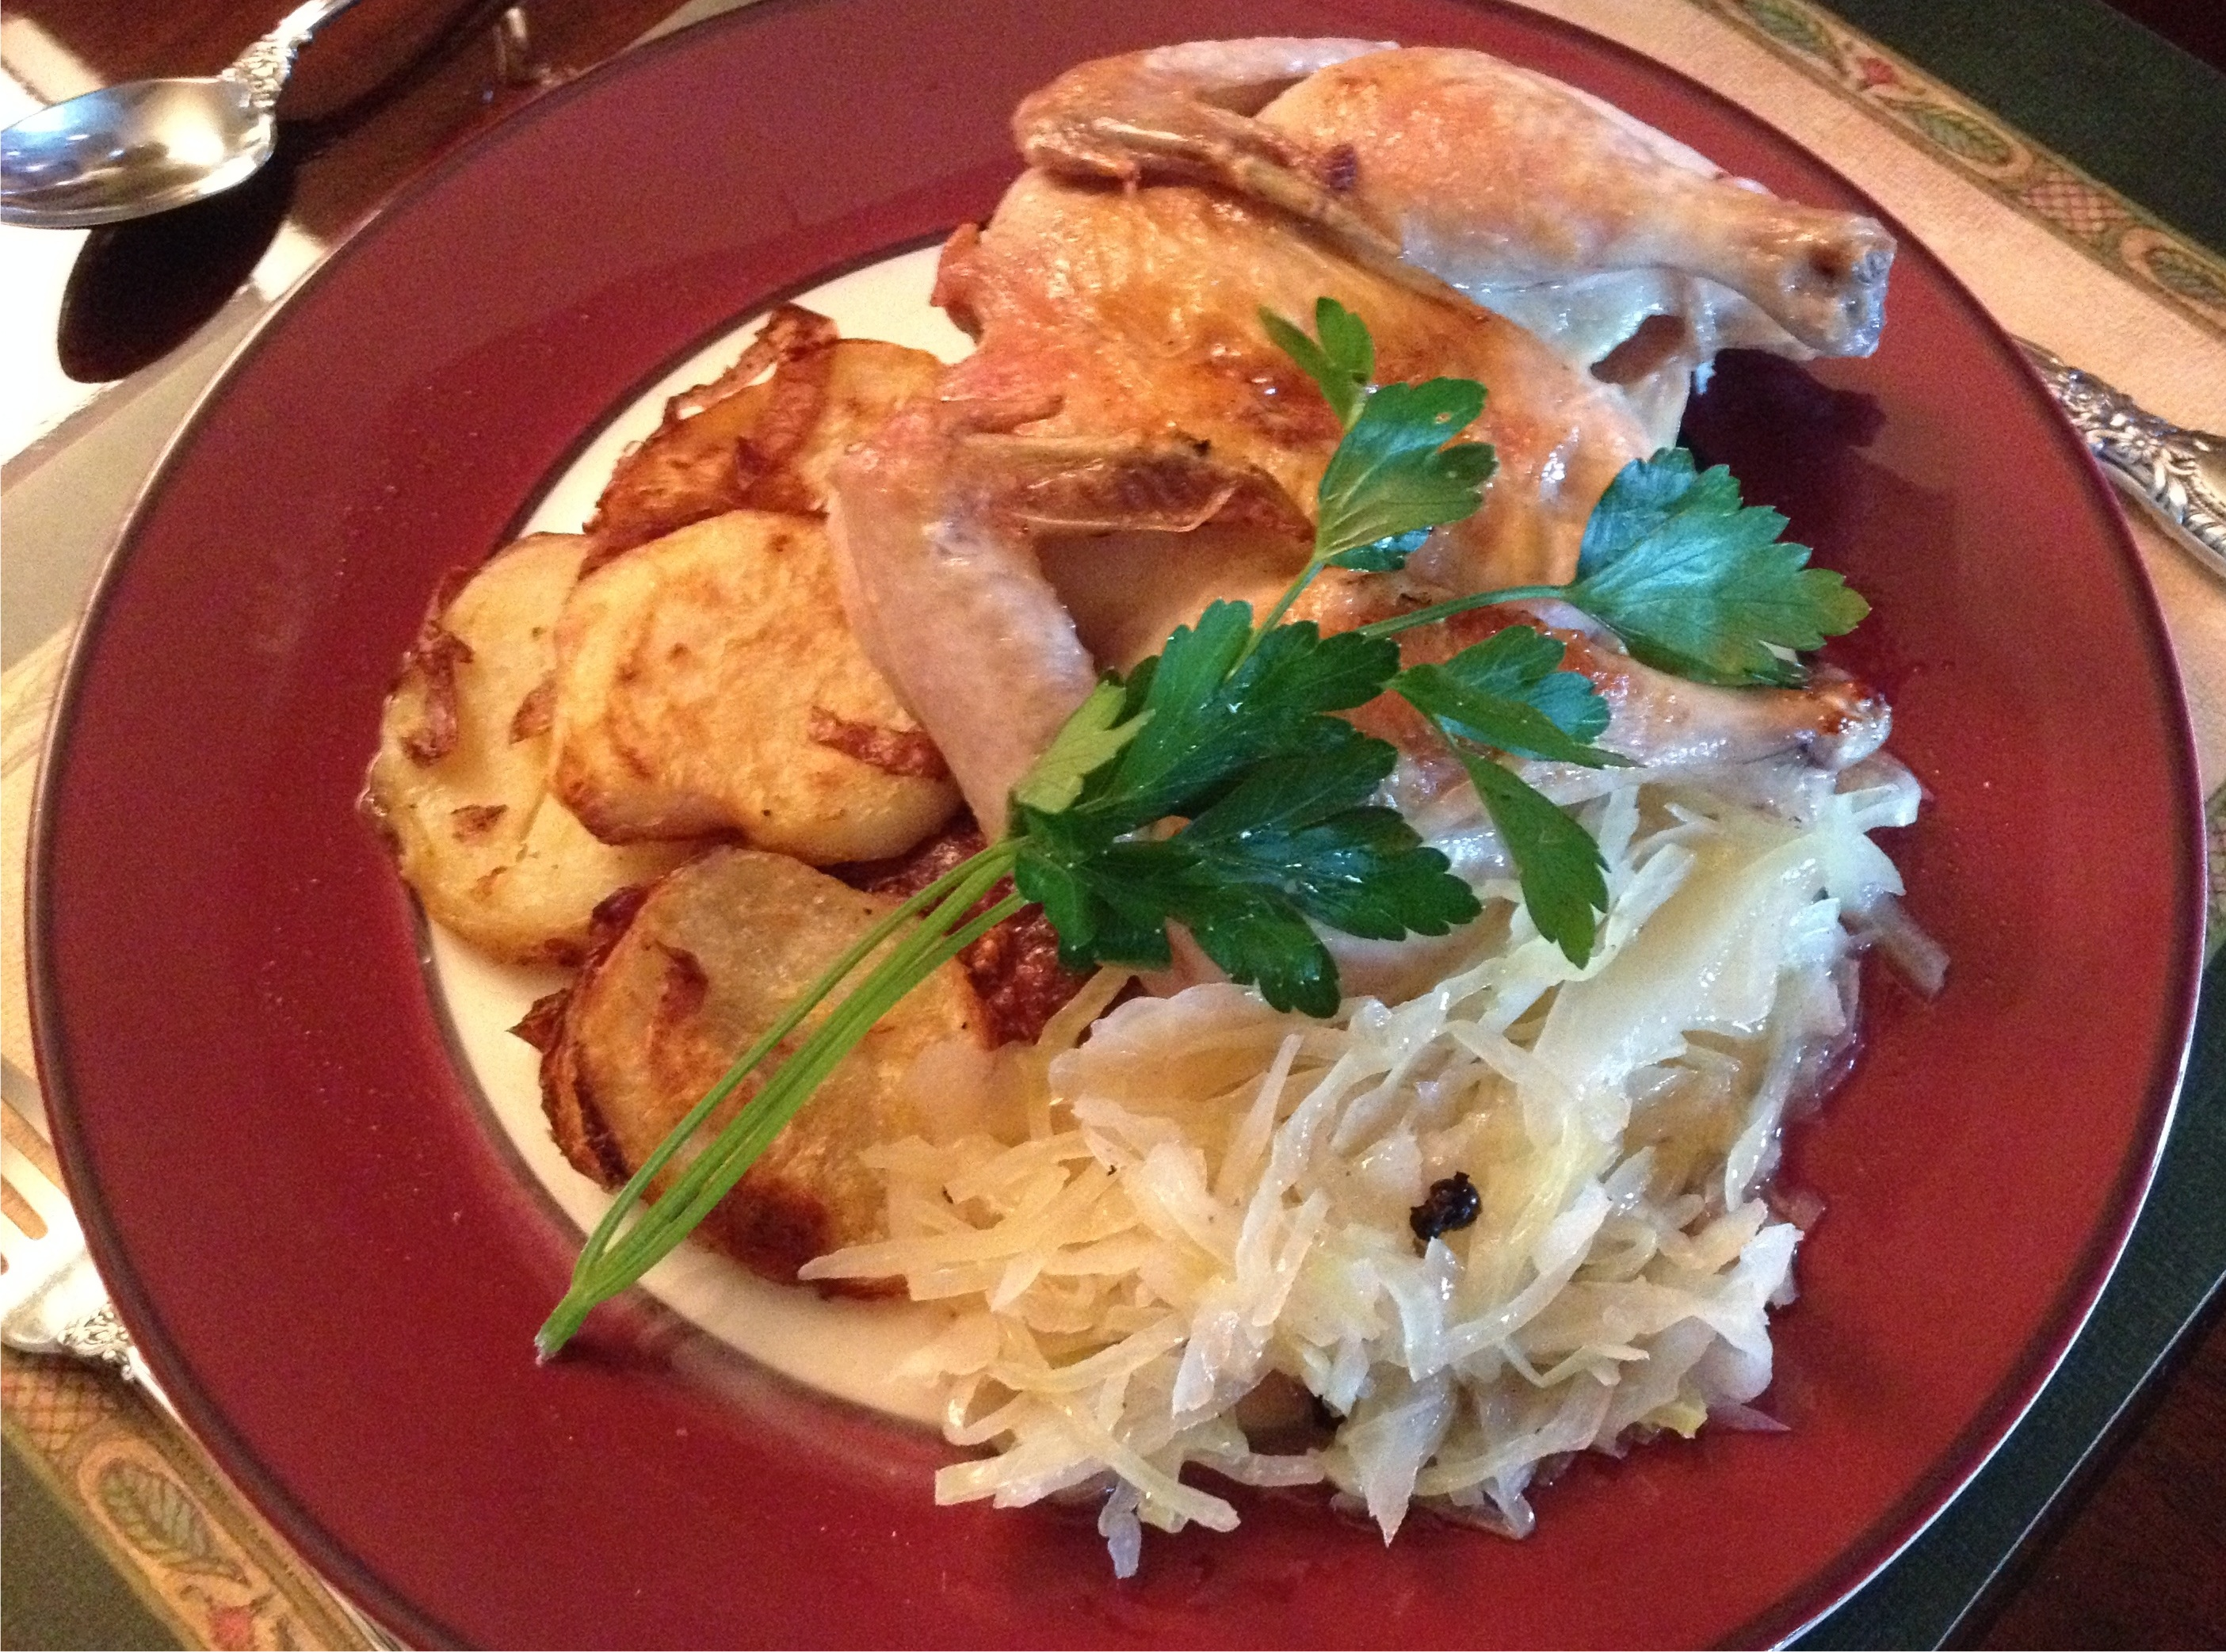 Roasted Cornish hens with sauerkraut and sliced roasted potatoes